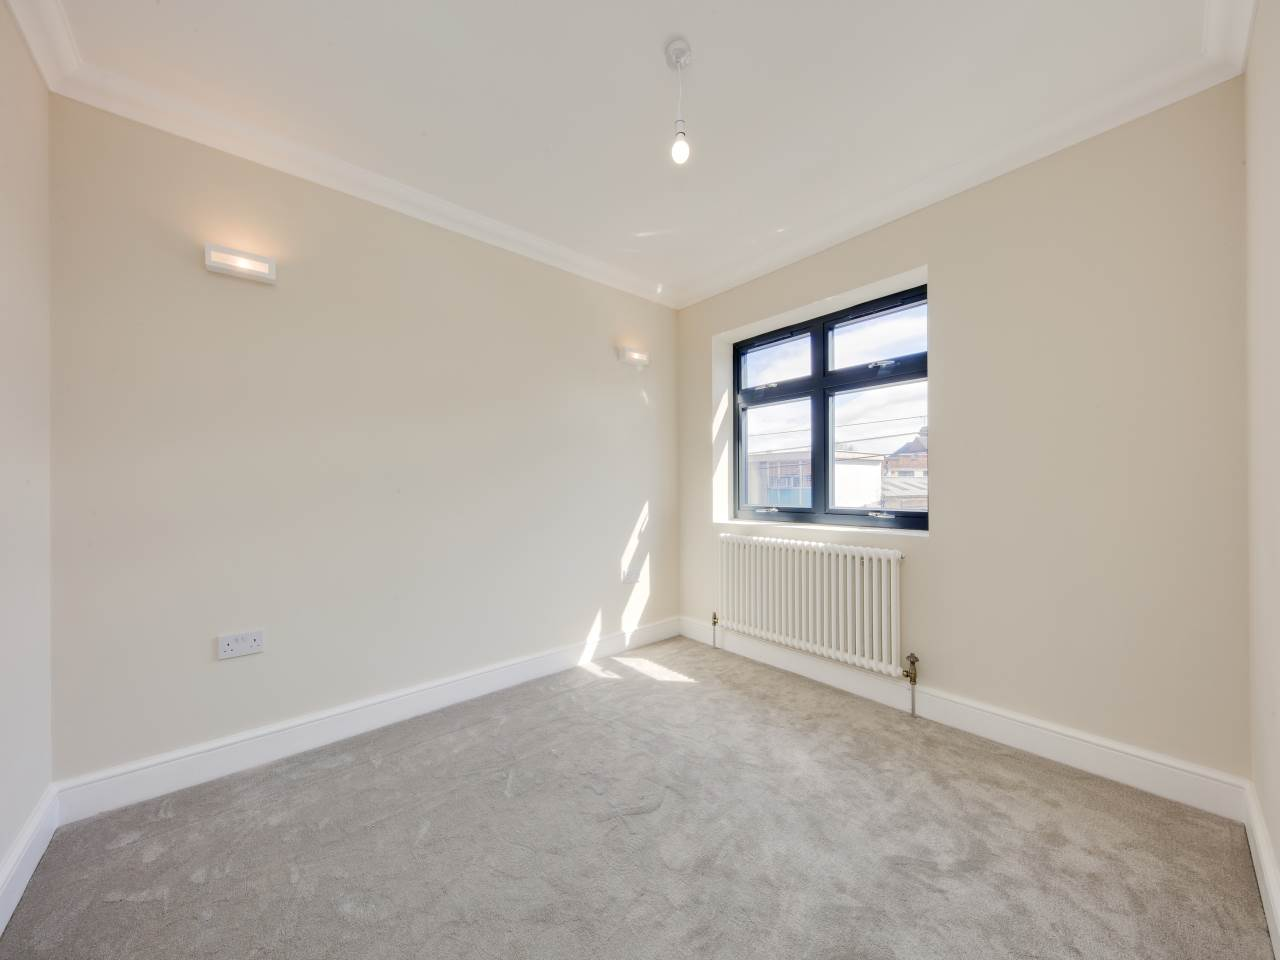 3 bed house for sale in Shernhall Street , Walthamstow  9